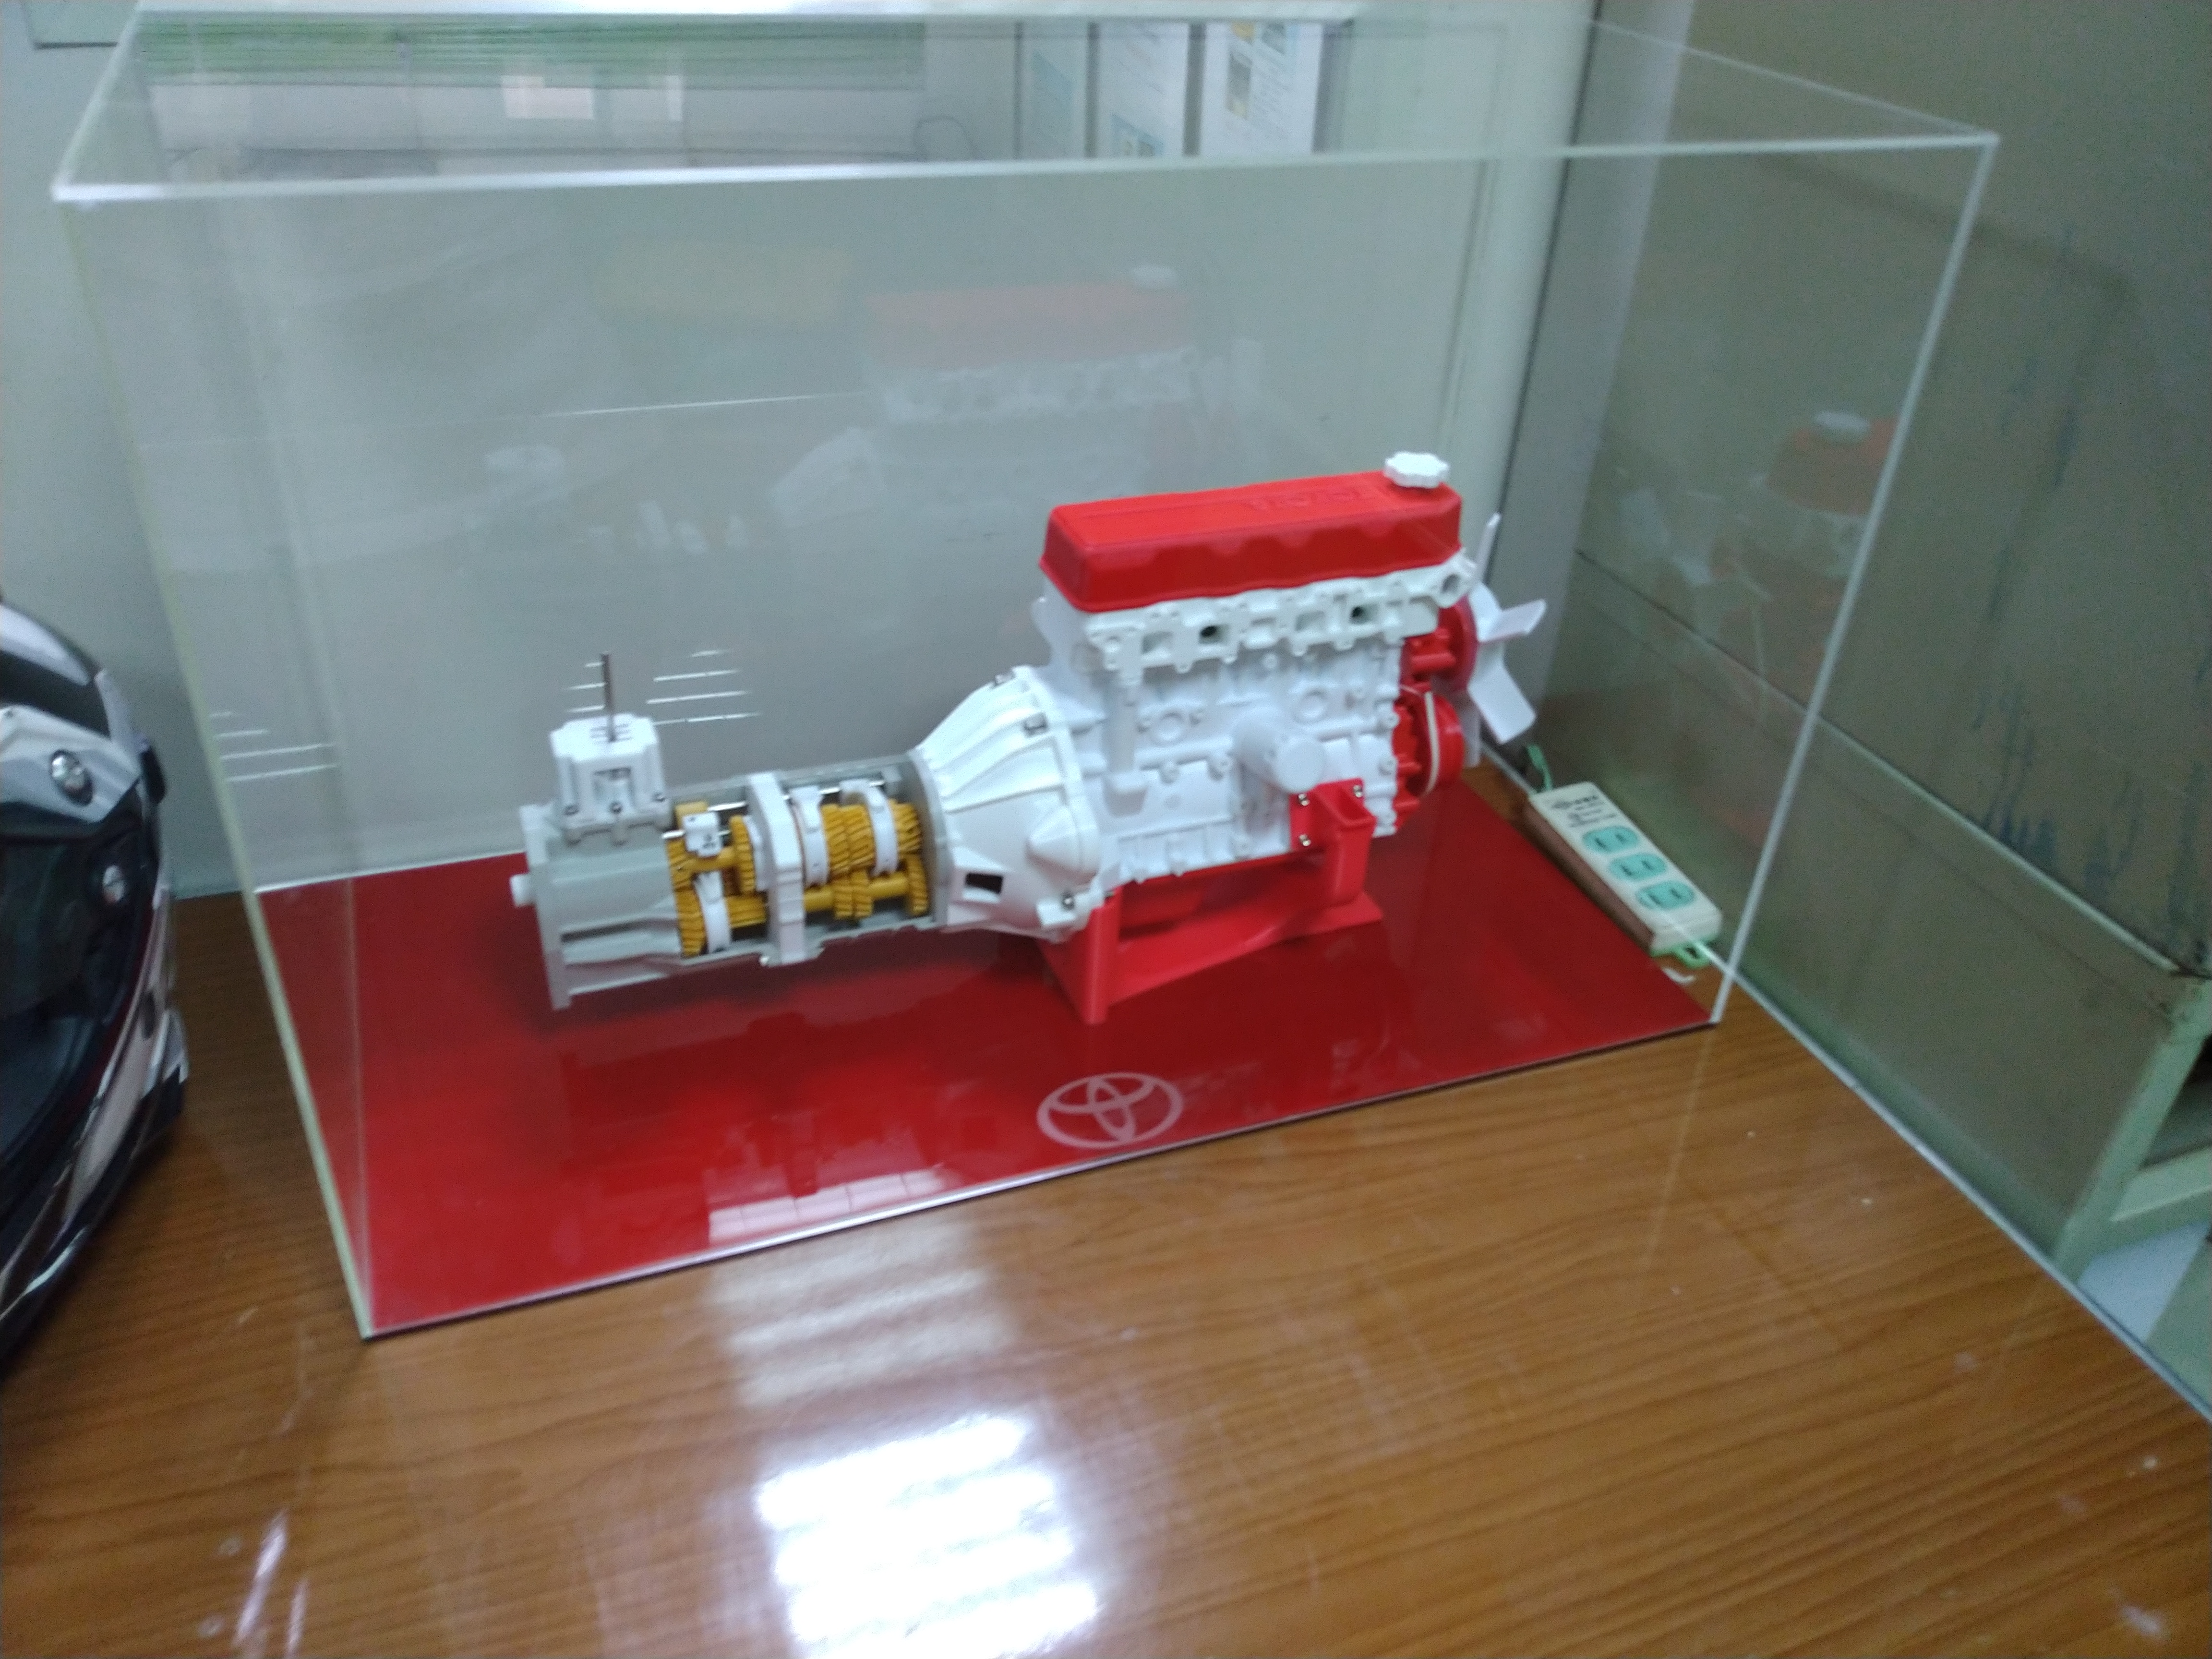 Toyota 4 Cylinder Engine 22RE, Complete working model by